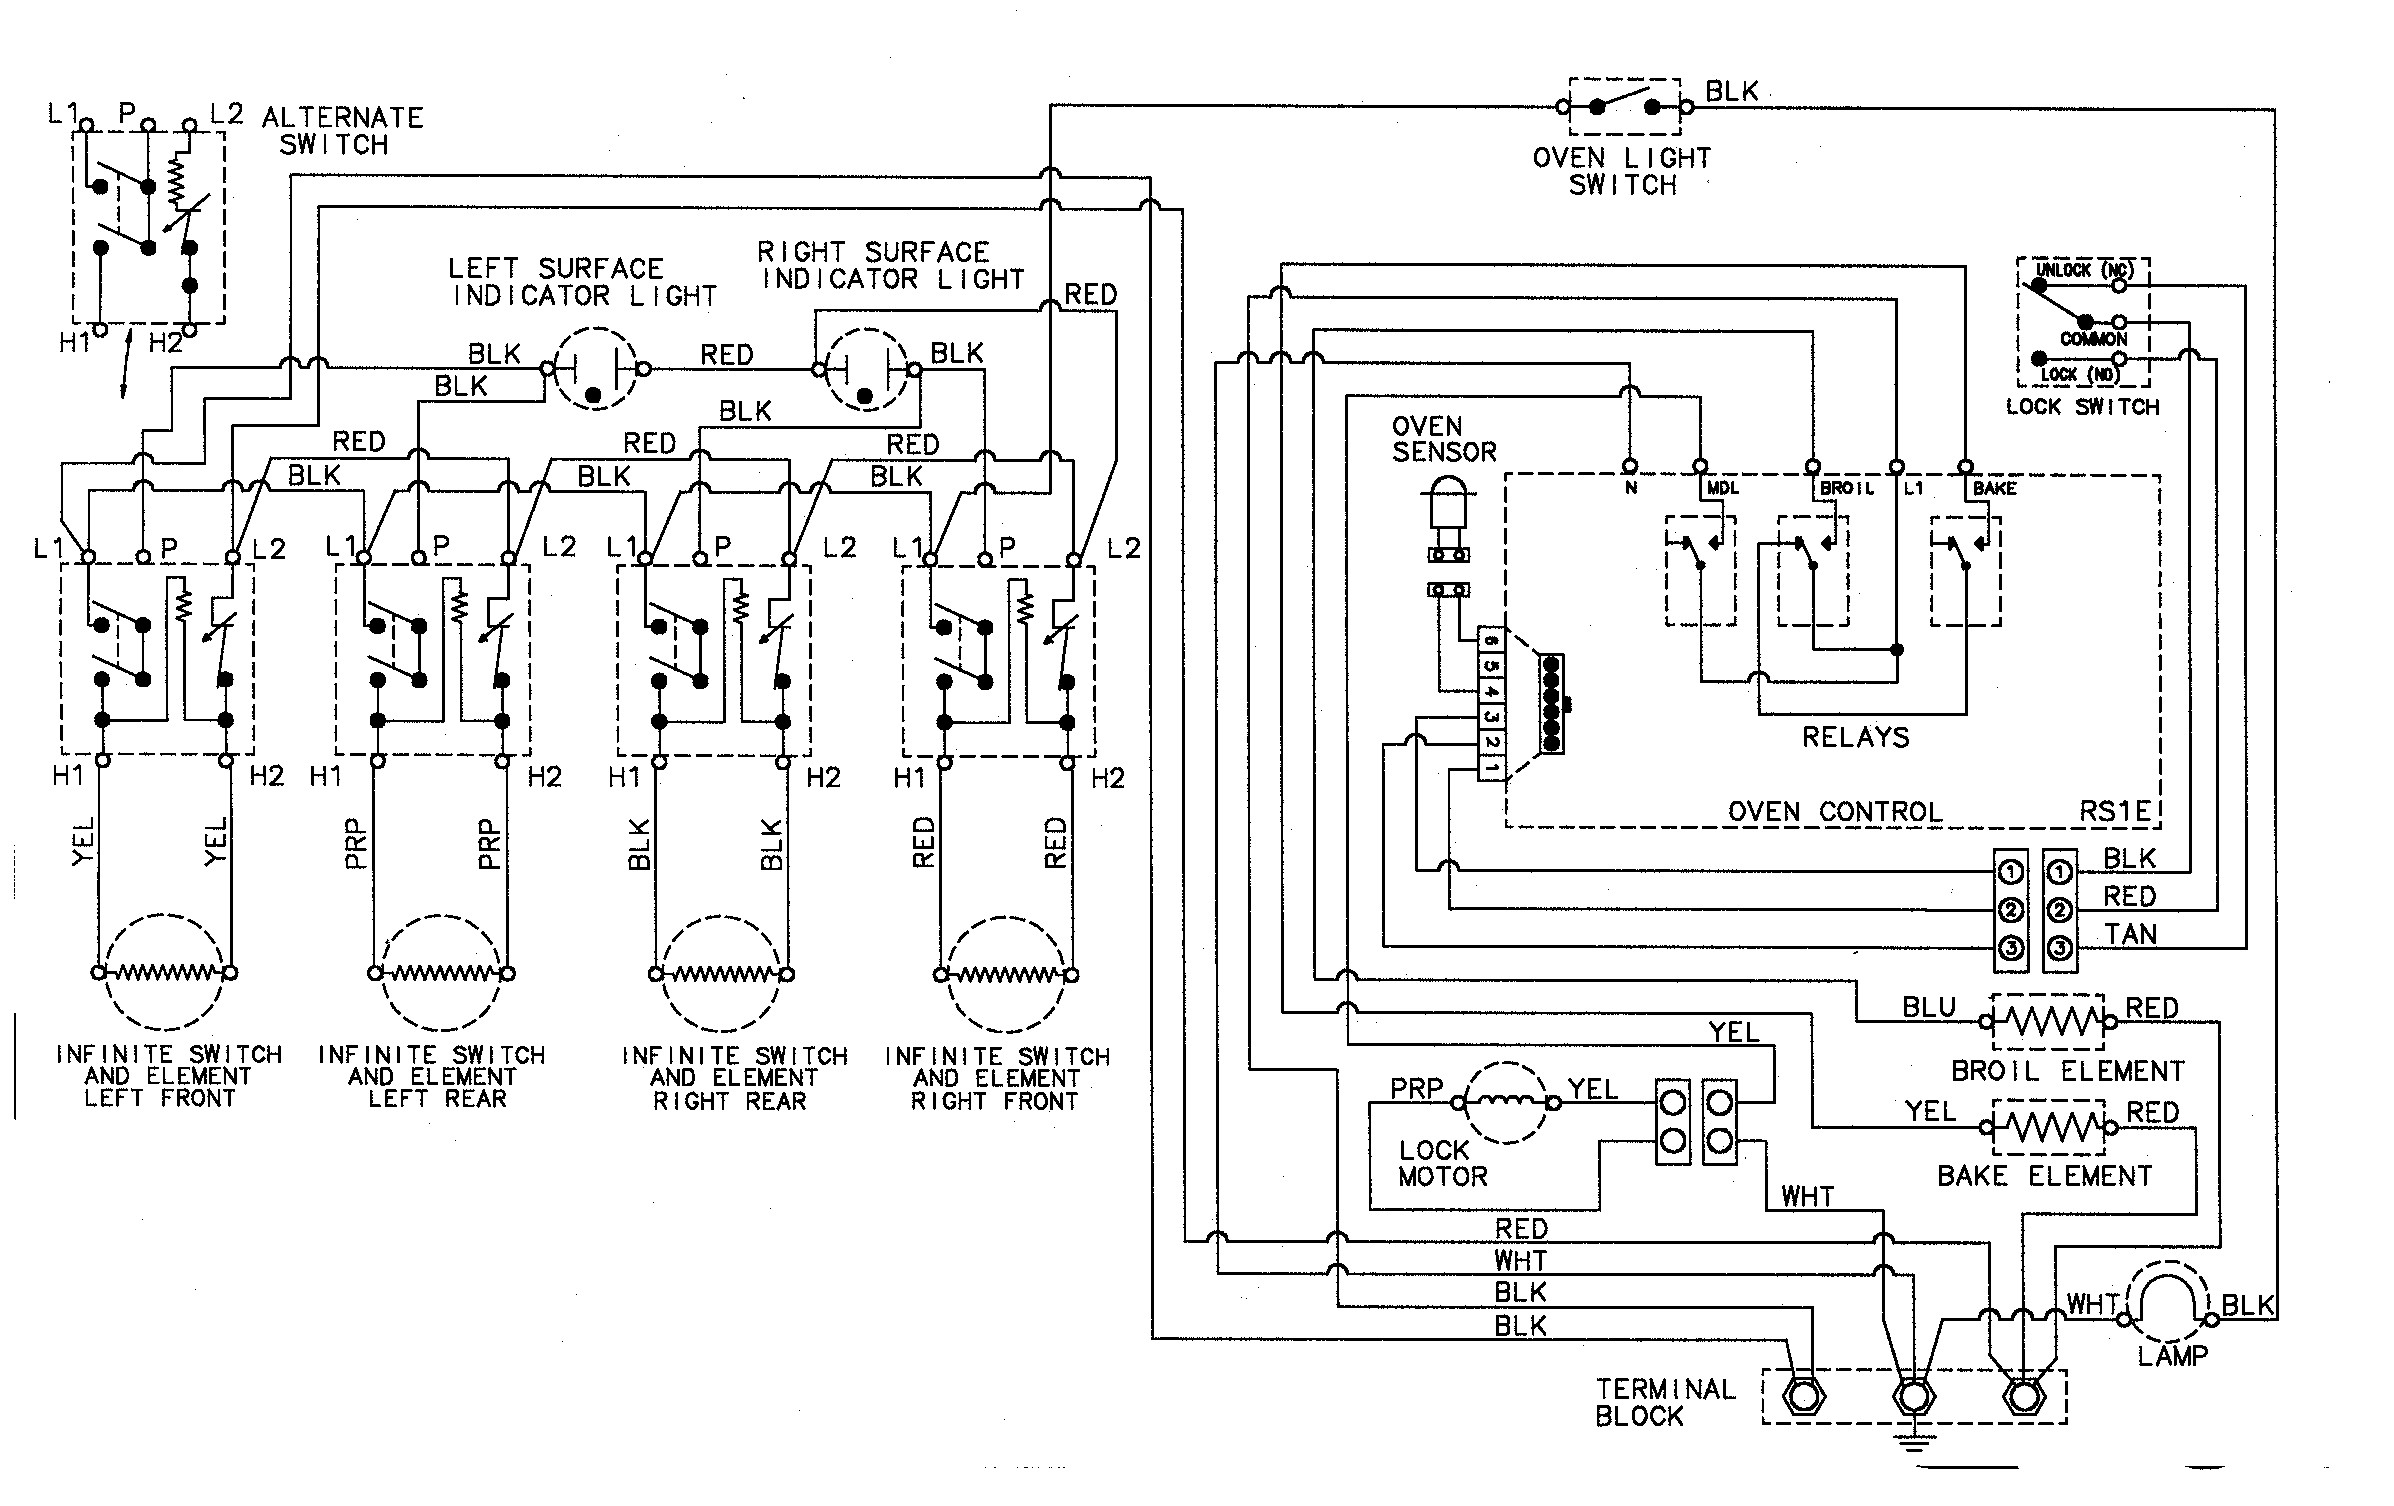 Defy 119 Plug In At Electric Stove Wiring Diagram - Wiring Diagram - Electric Stove Wiring Diagram